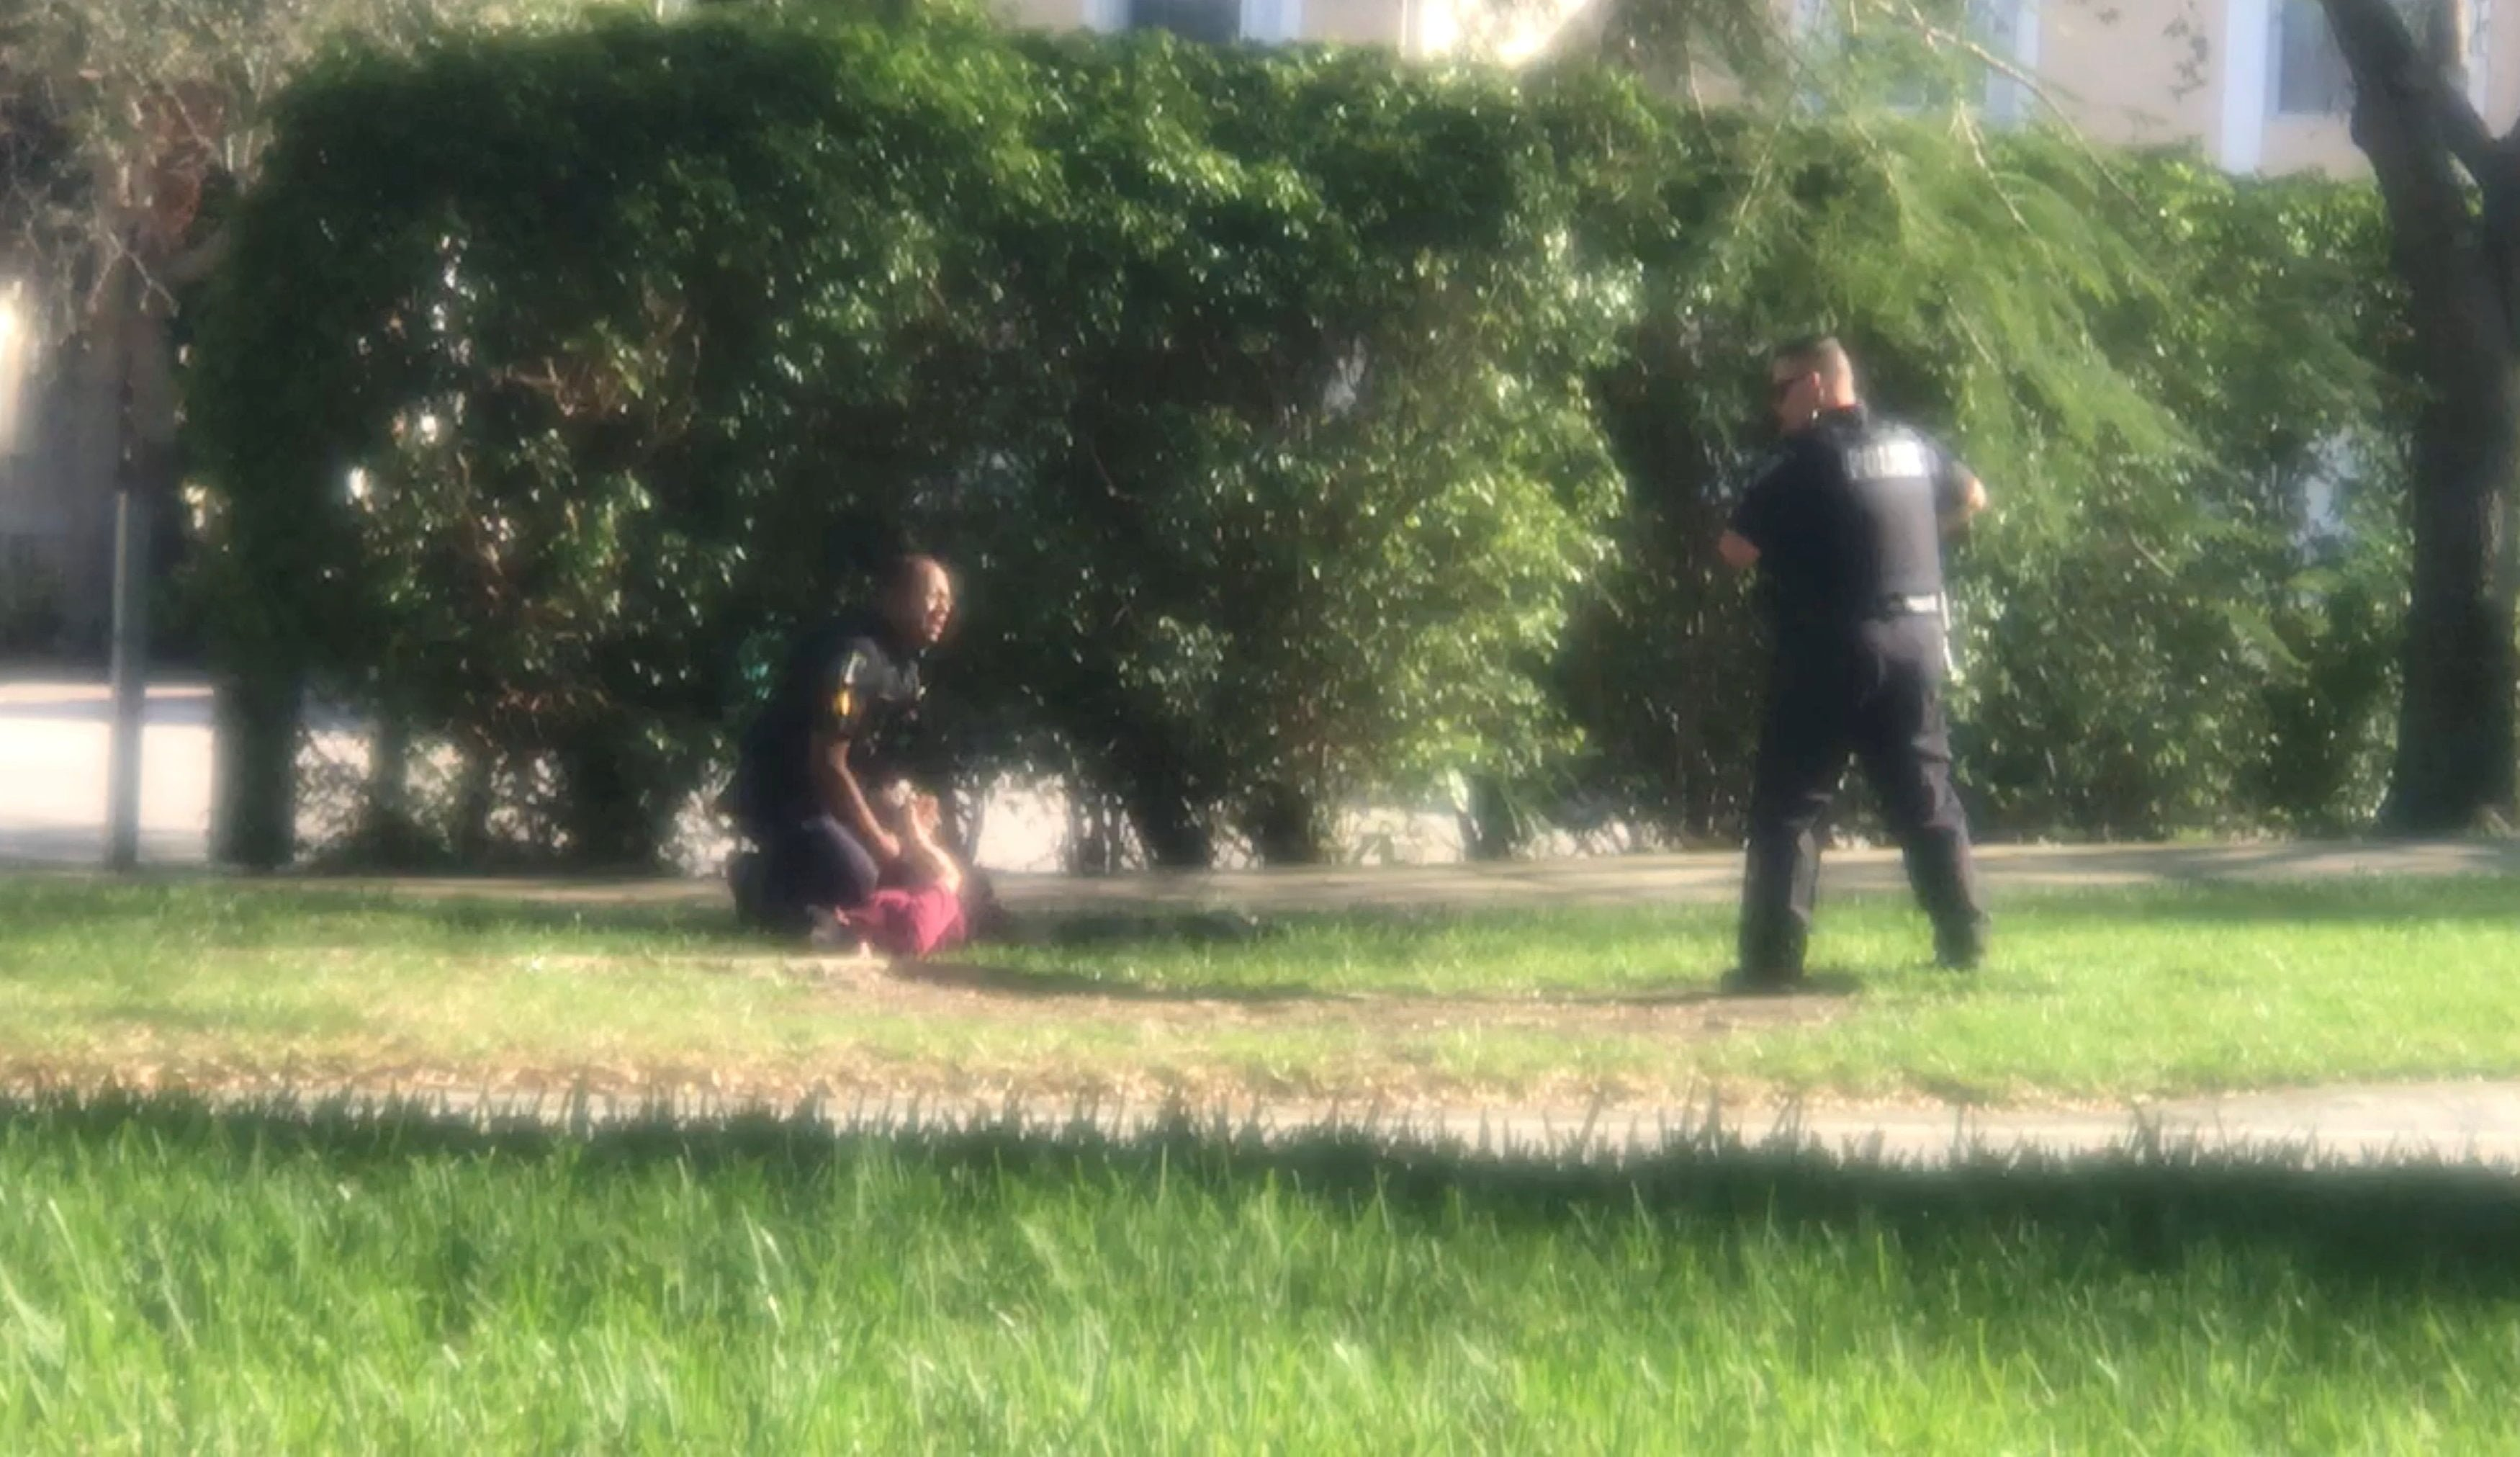 A man is placed in handcuffs by police officer, following a shooting incident in Parkland